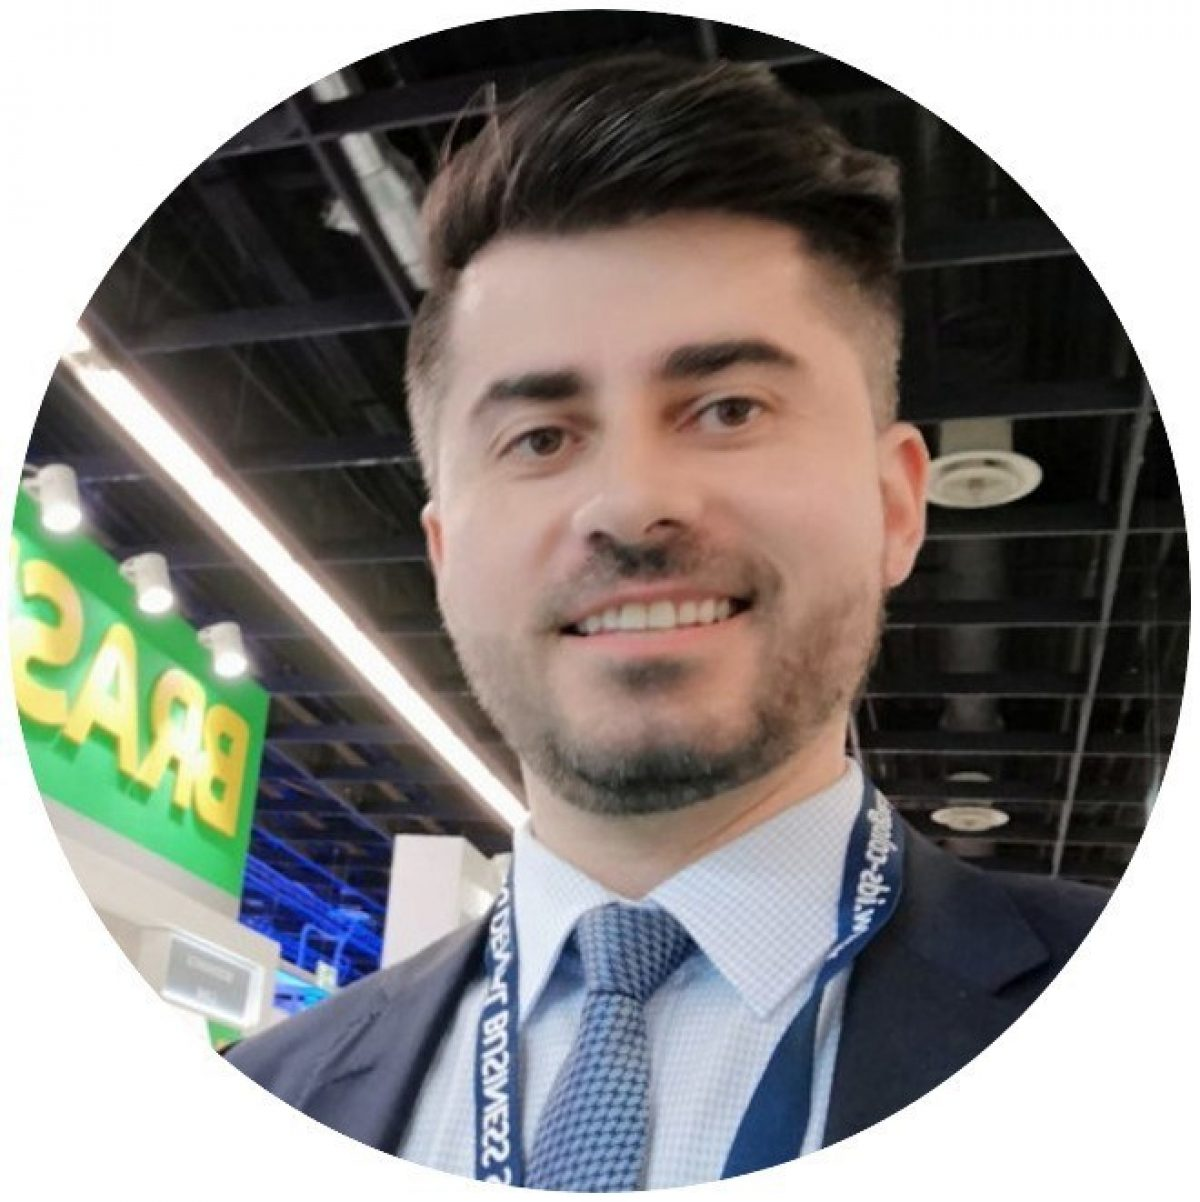 Meet the Microban Team Mate Antimicrobial Solutions Specialist mtime20190524075628